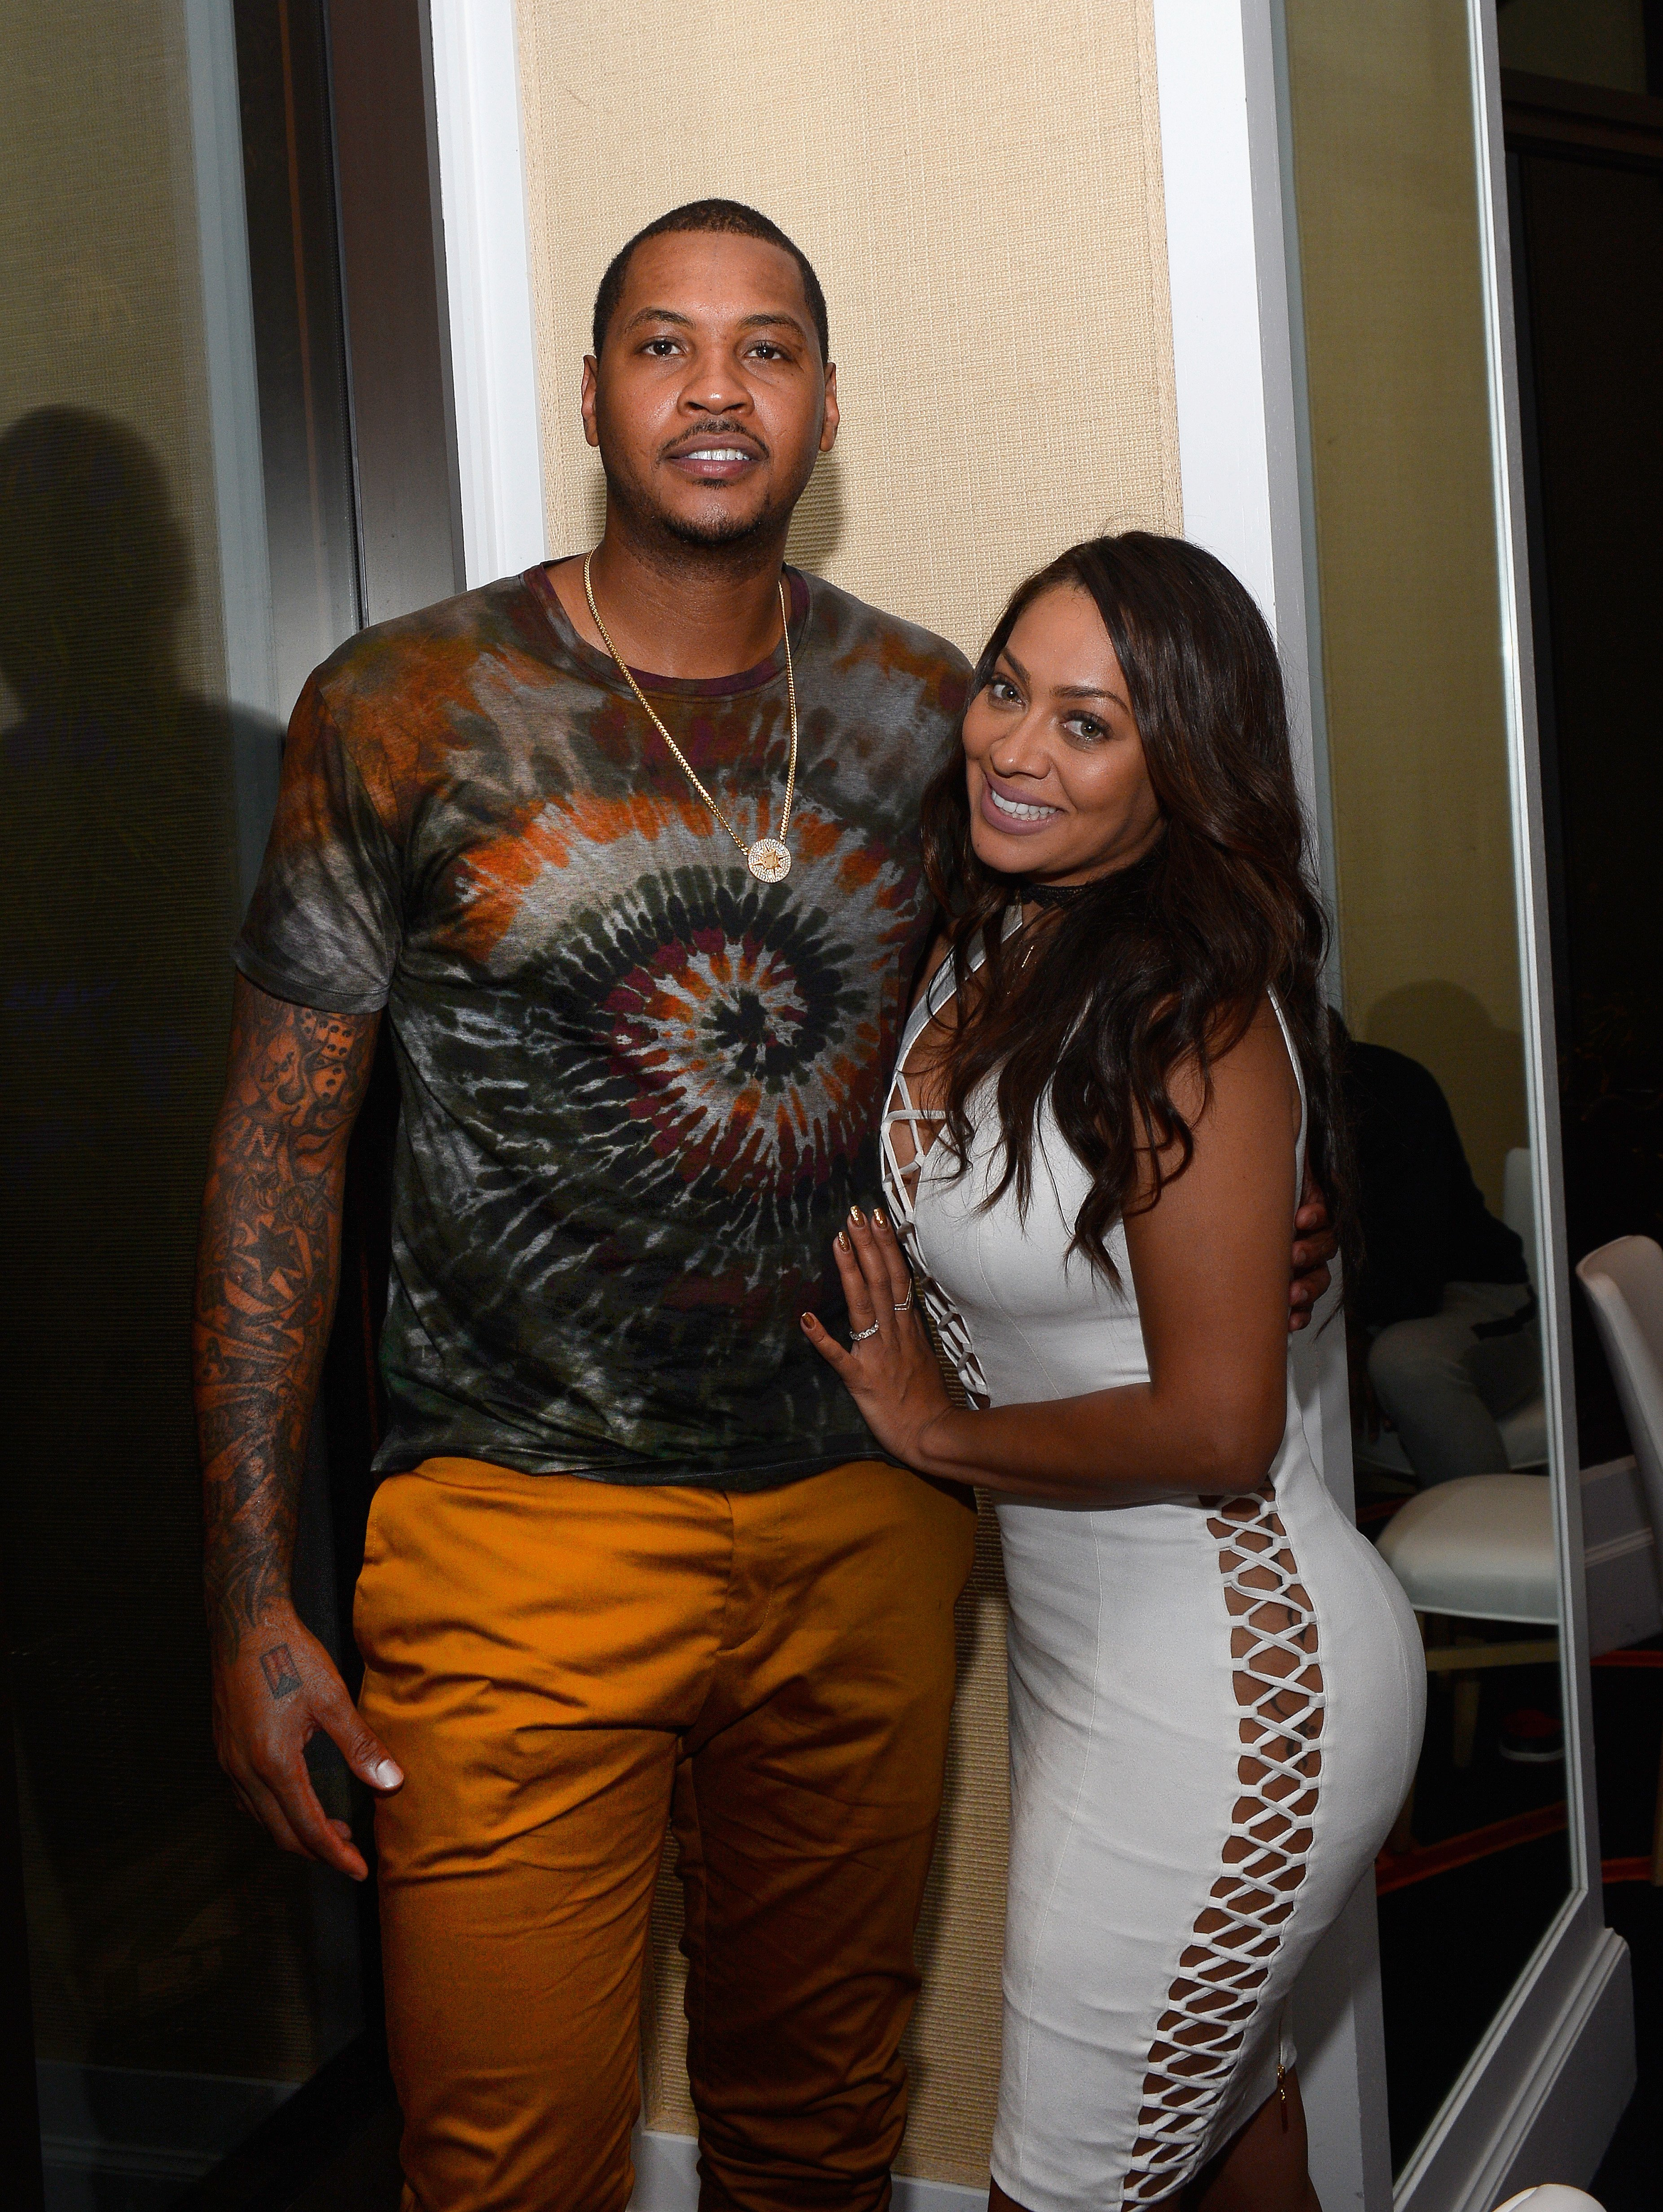 La La Anthony supporting Carmelo Anthony when he hosted the Team USA welcome dinner at Wynn Las Vegas in July 2016. | Photo: Getty Images